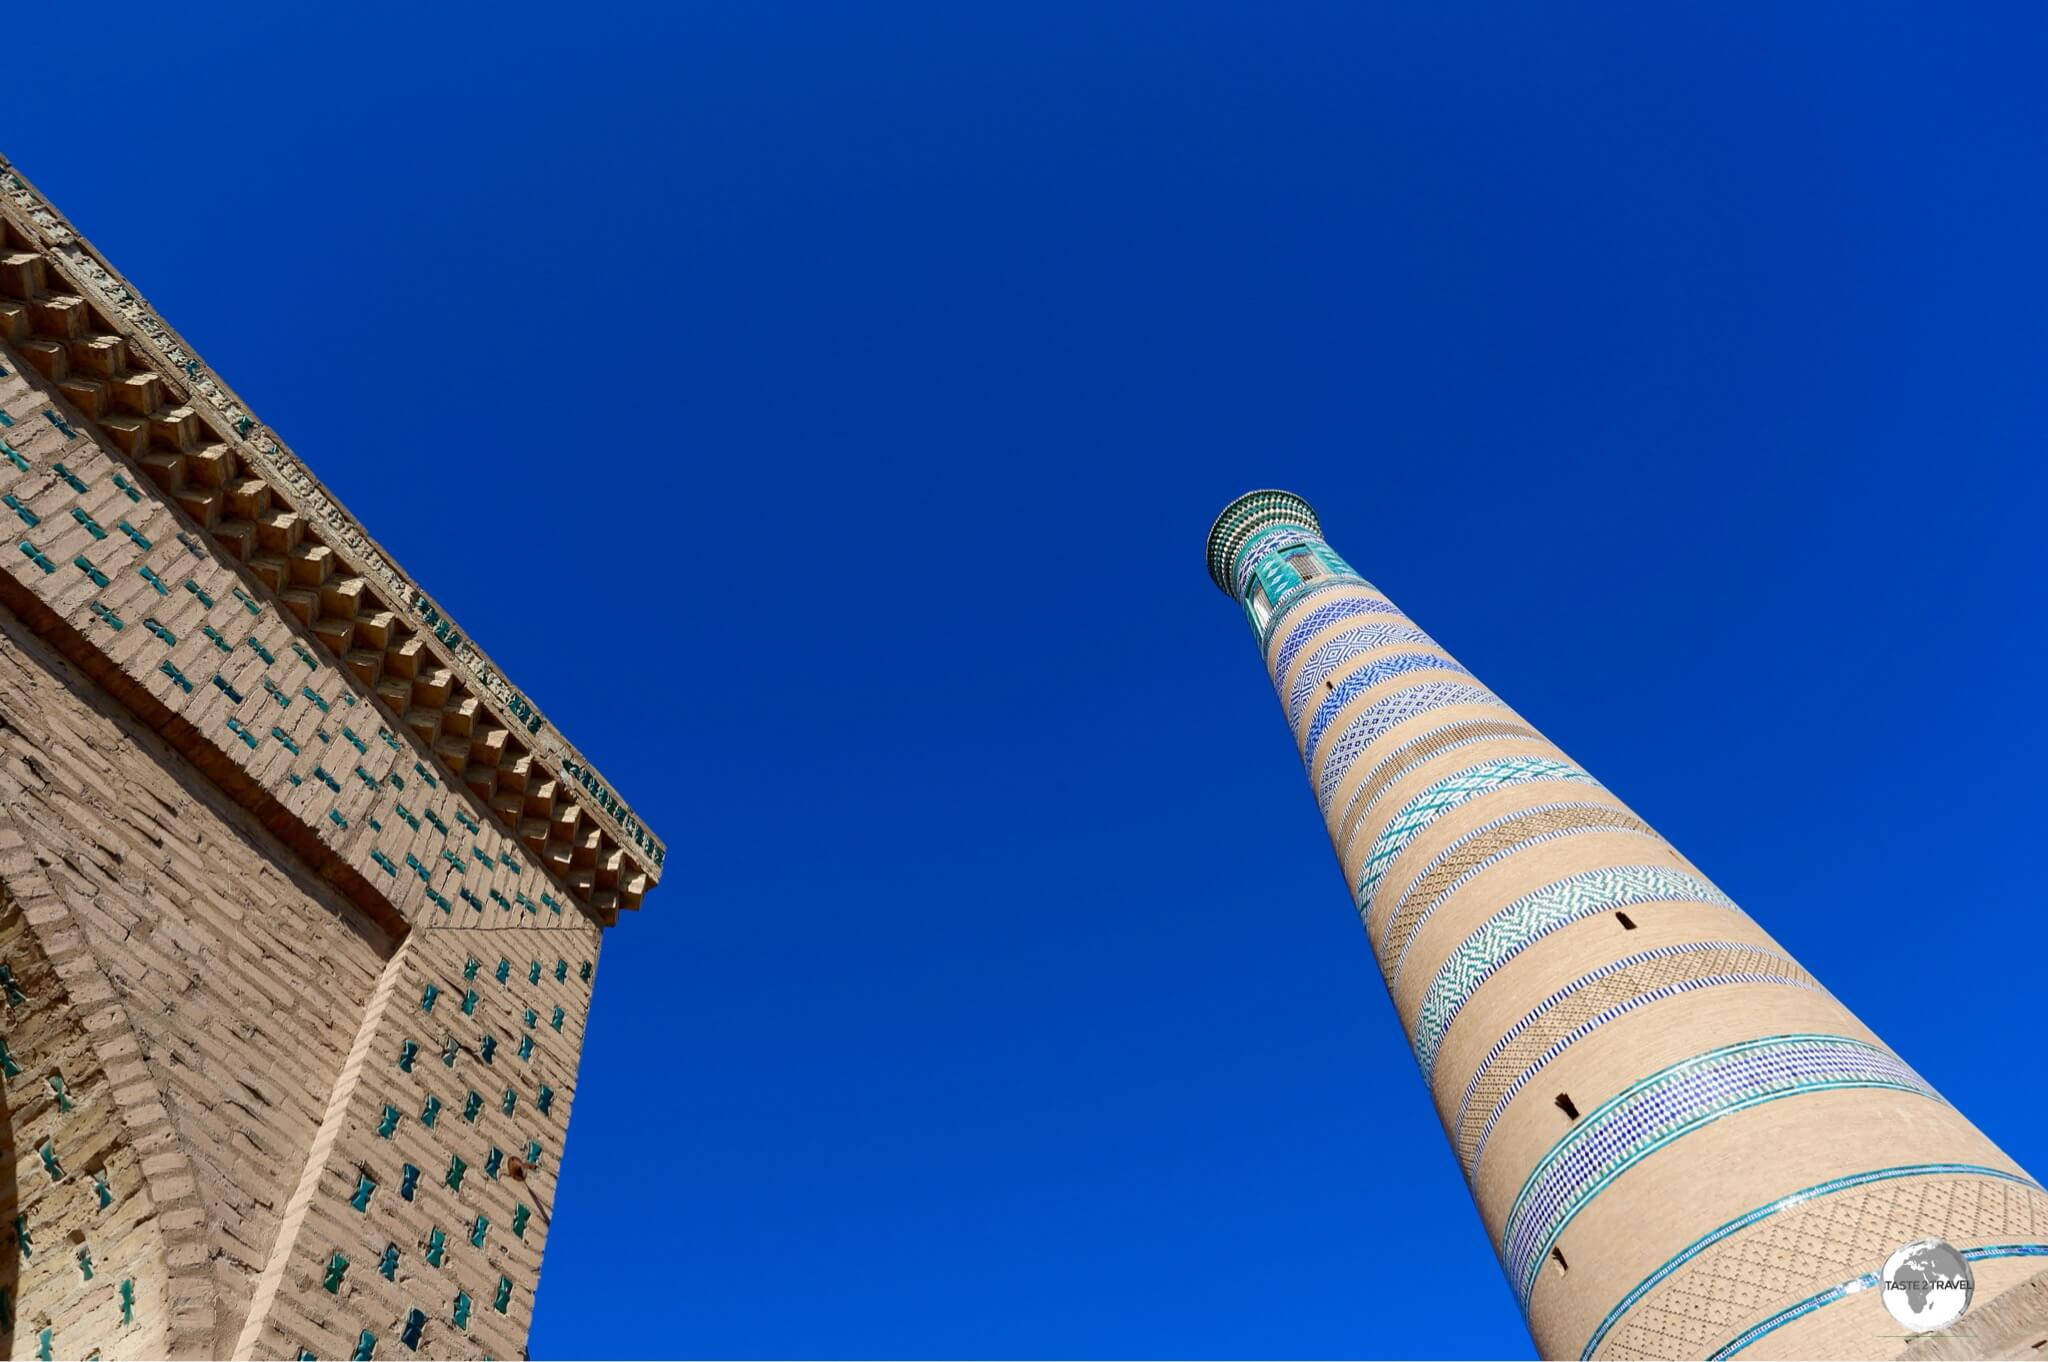 The towering Islam Khoja Minaret in Khiva.